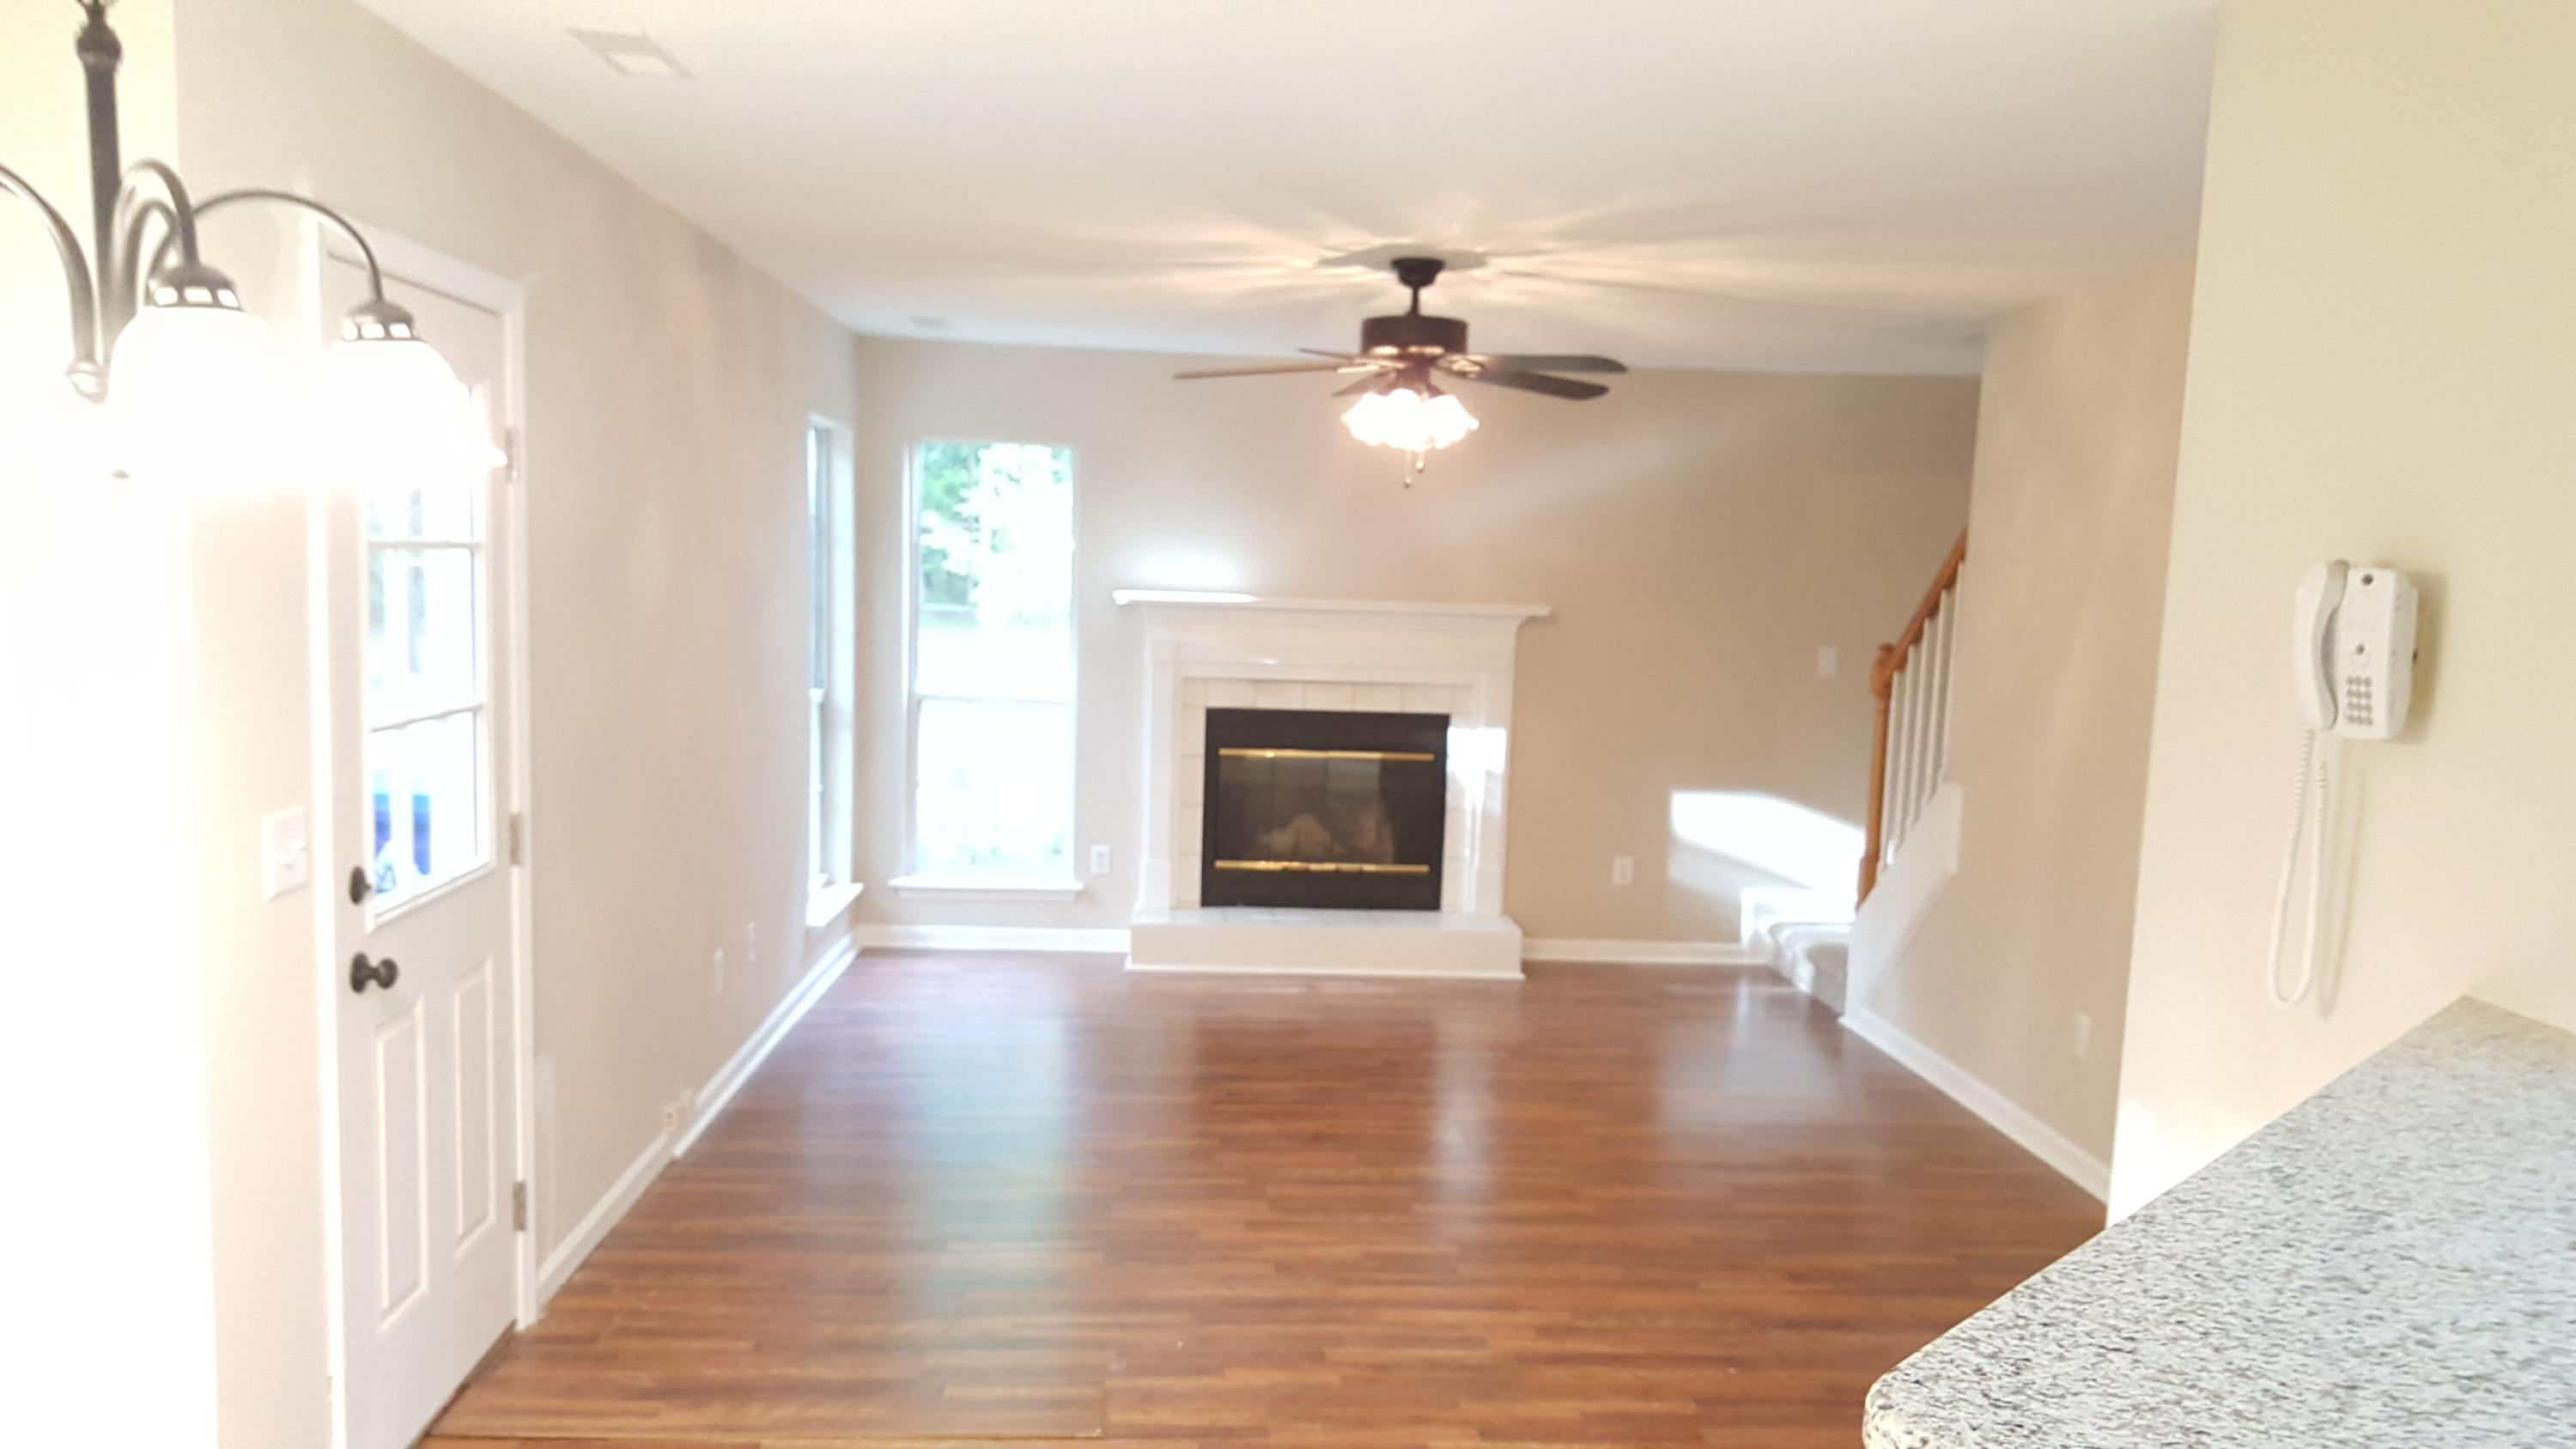 Ivy Hall Homes For Sale - 3221 Seaborn, Mount Pleasant, SC - 15